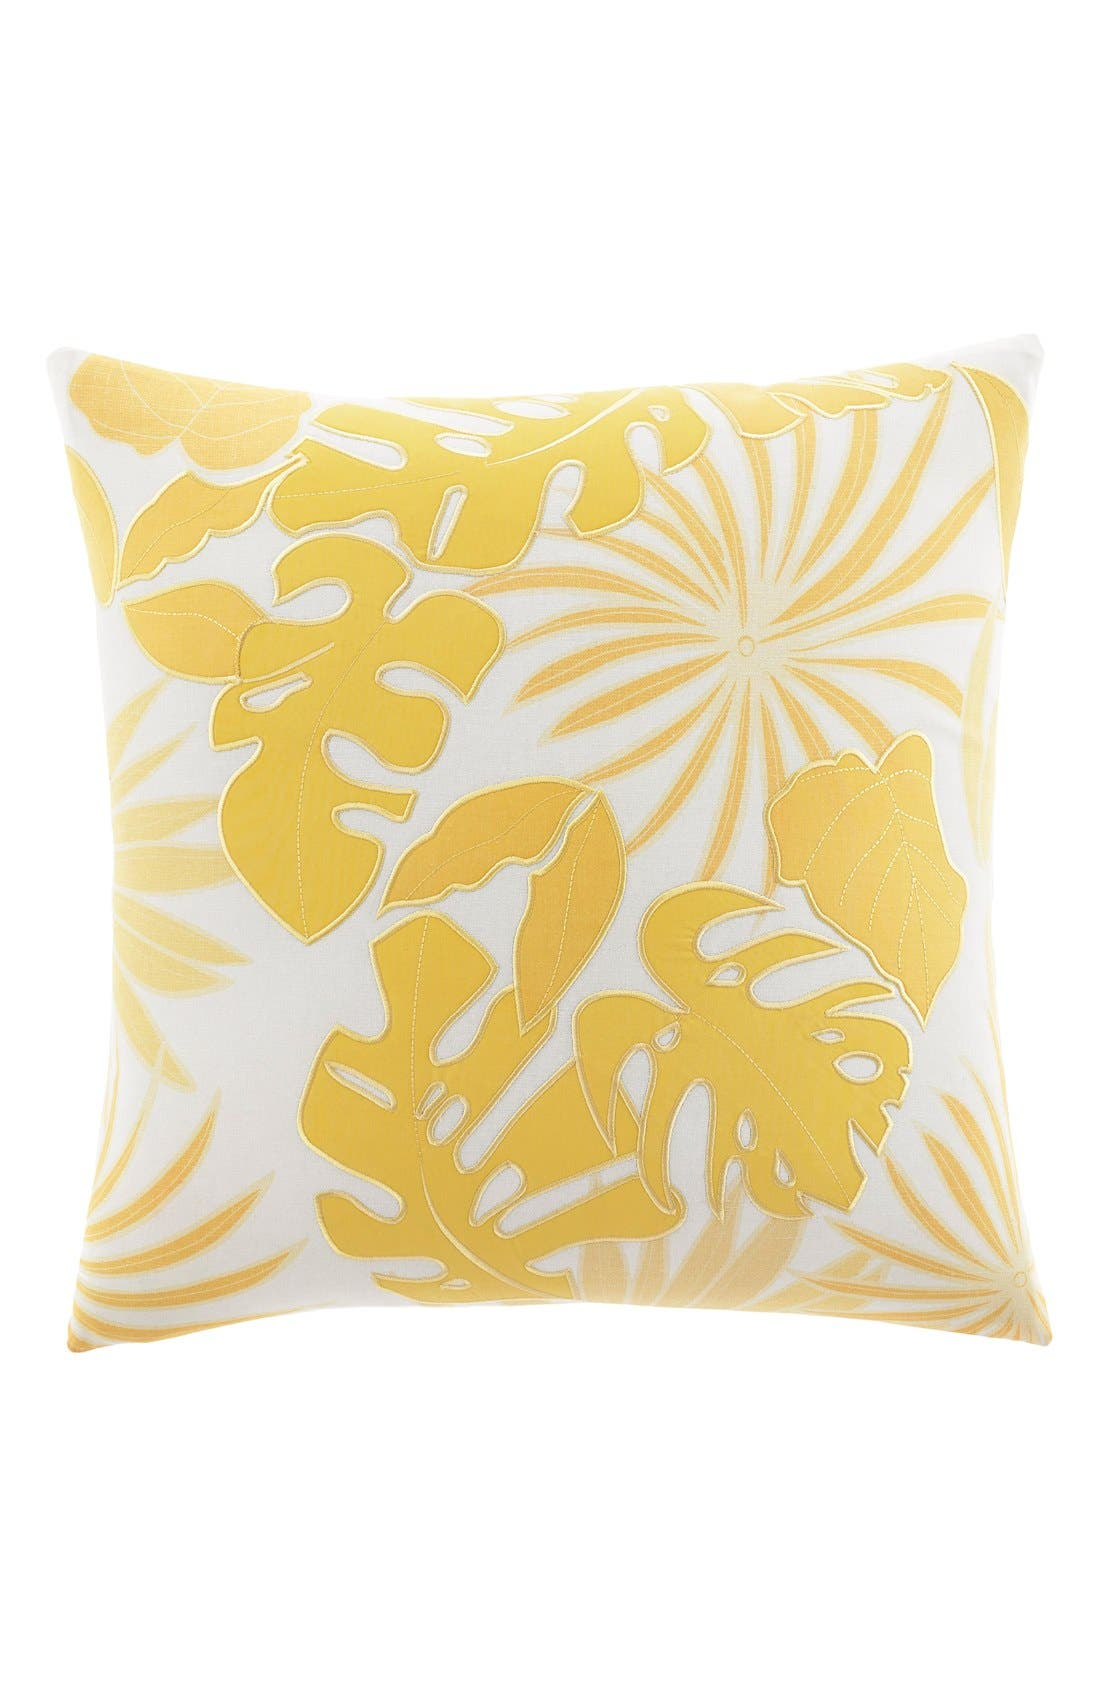 Main Image - Tommy Bahama 'Antique Palm' Accent Pillow